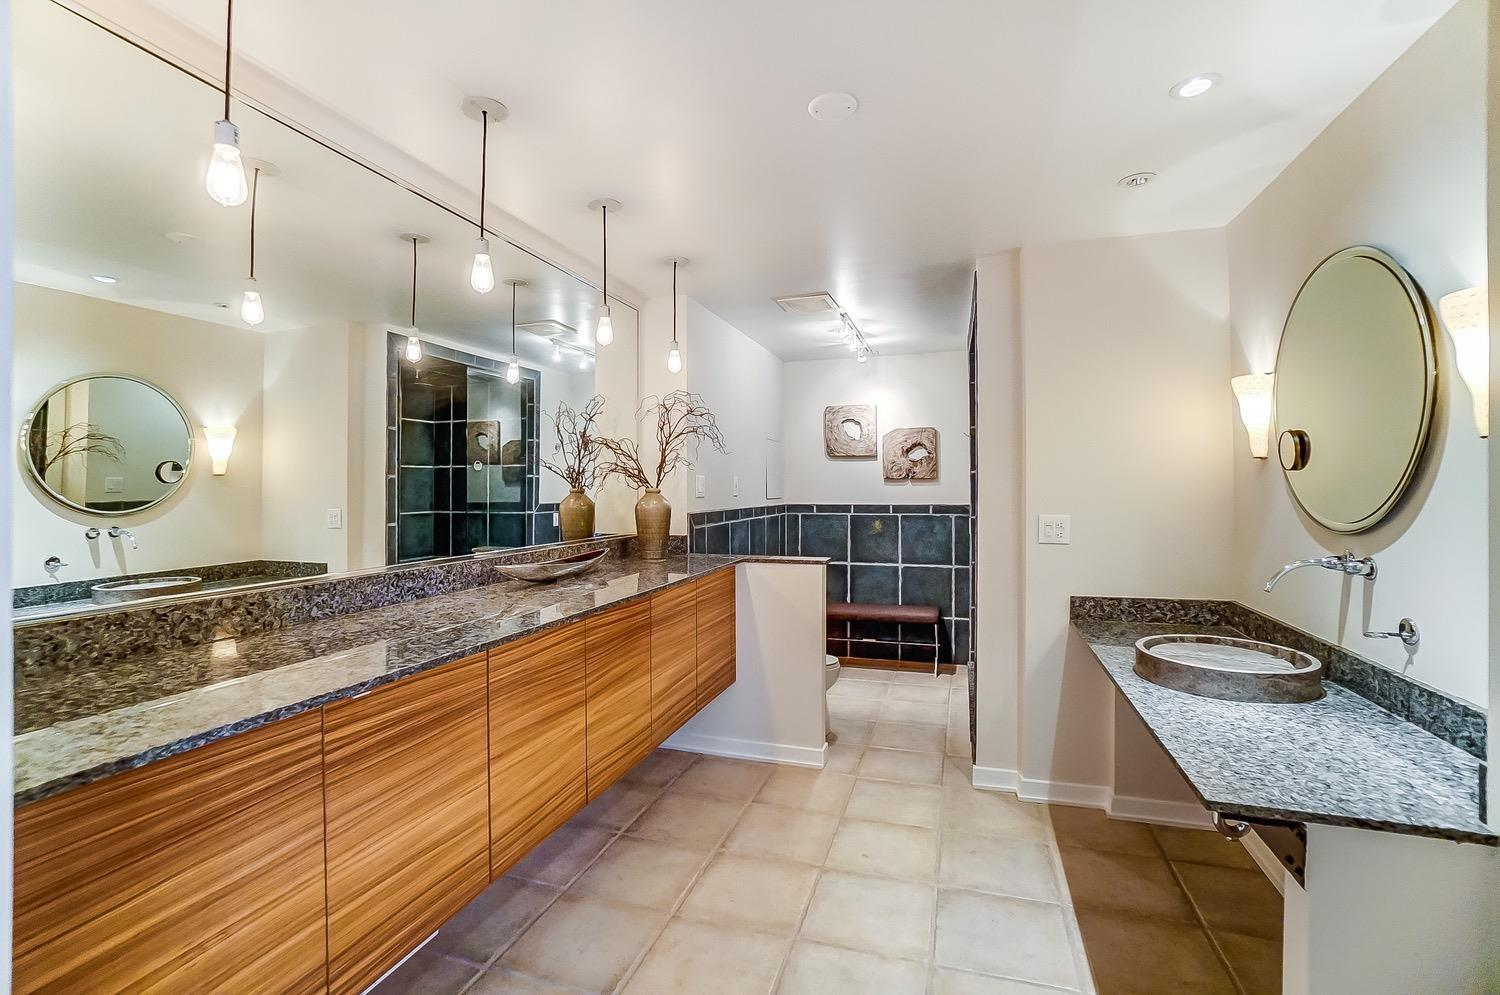 Custom cabinetry, granite counters and sophisticated finishes throughout.